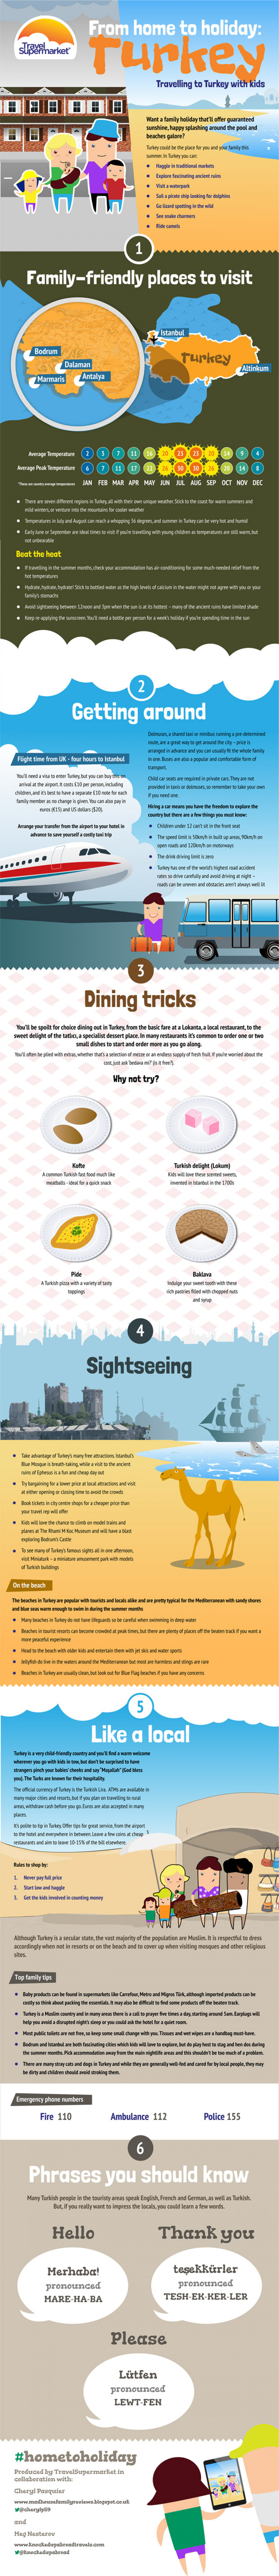 Travelling to Turkey with kids Infographic